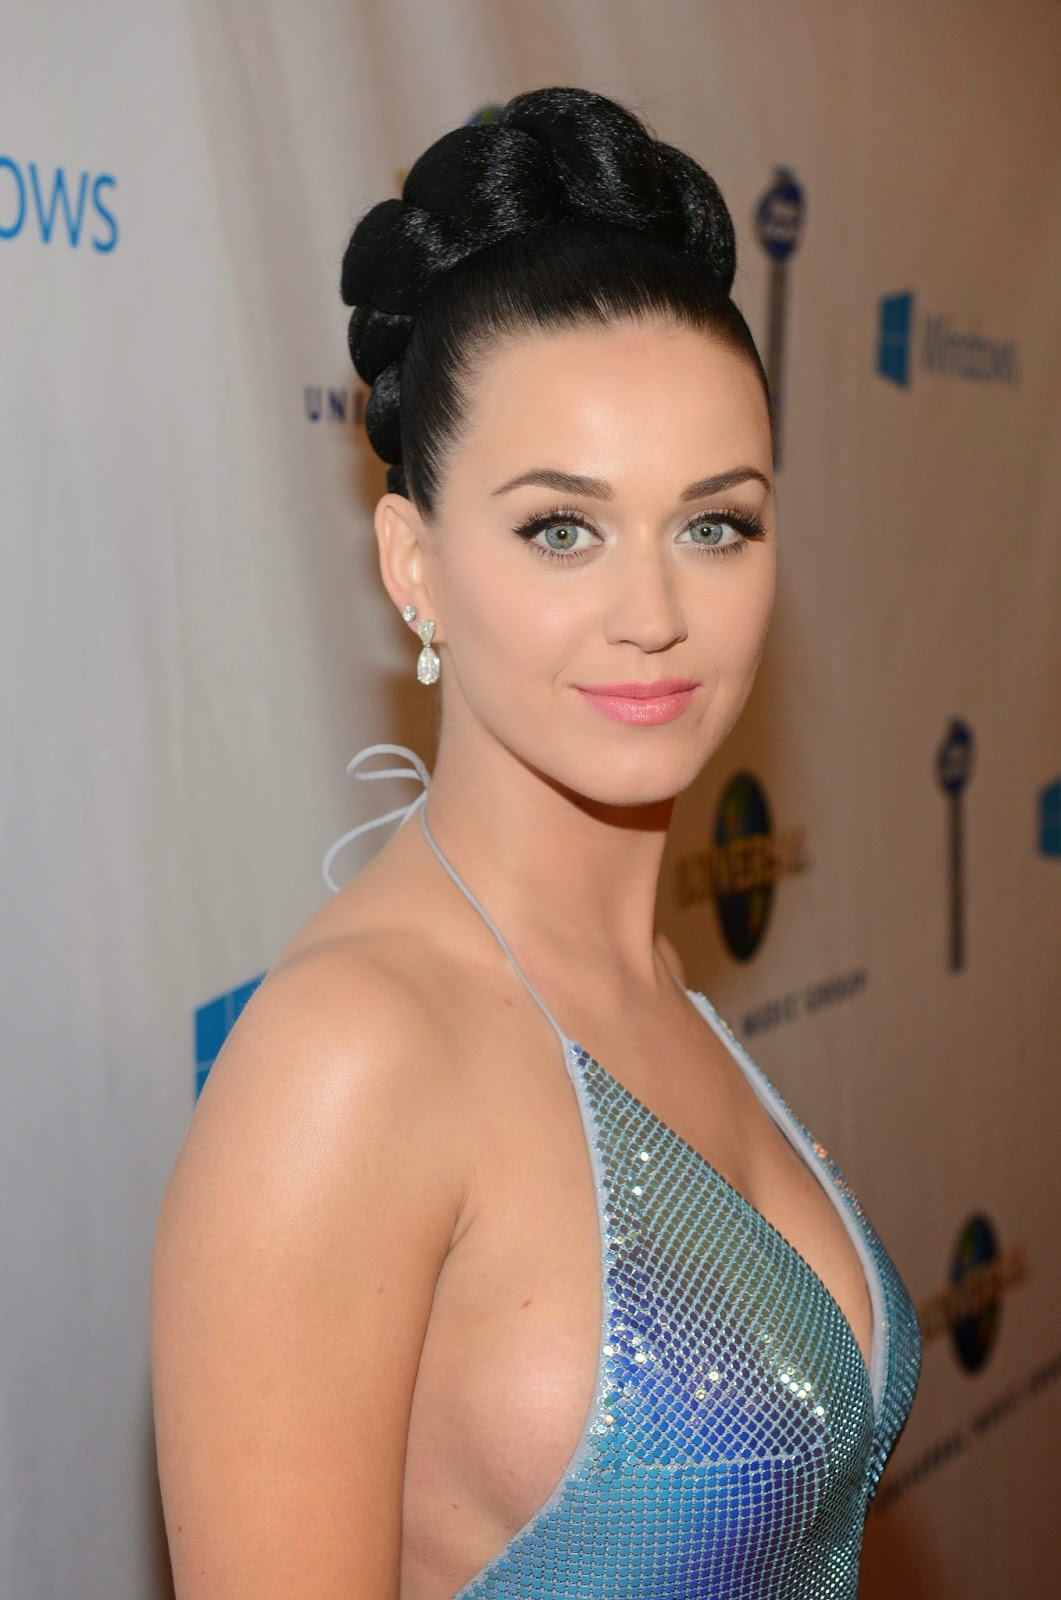 Wallpaper: Wallpaper: ... Katy Perry Videos